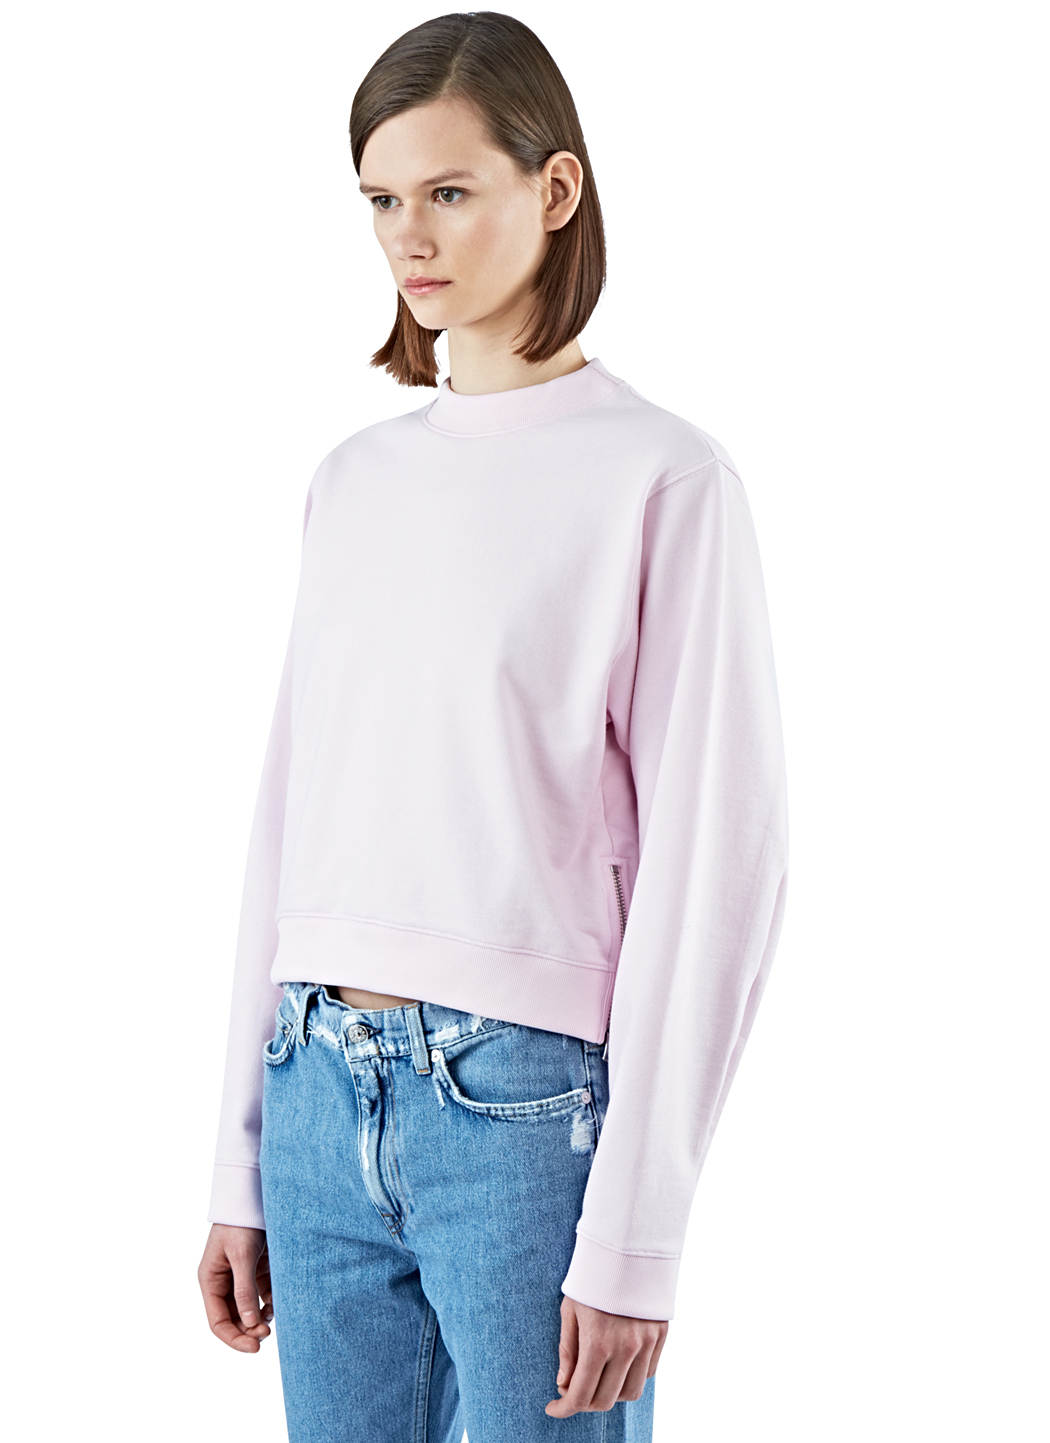 lyst acne studios women 39 s bird u zipped fleece sweater in pink in pink. Black Bedroom Furniture Sets. Home Design Ideas